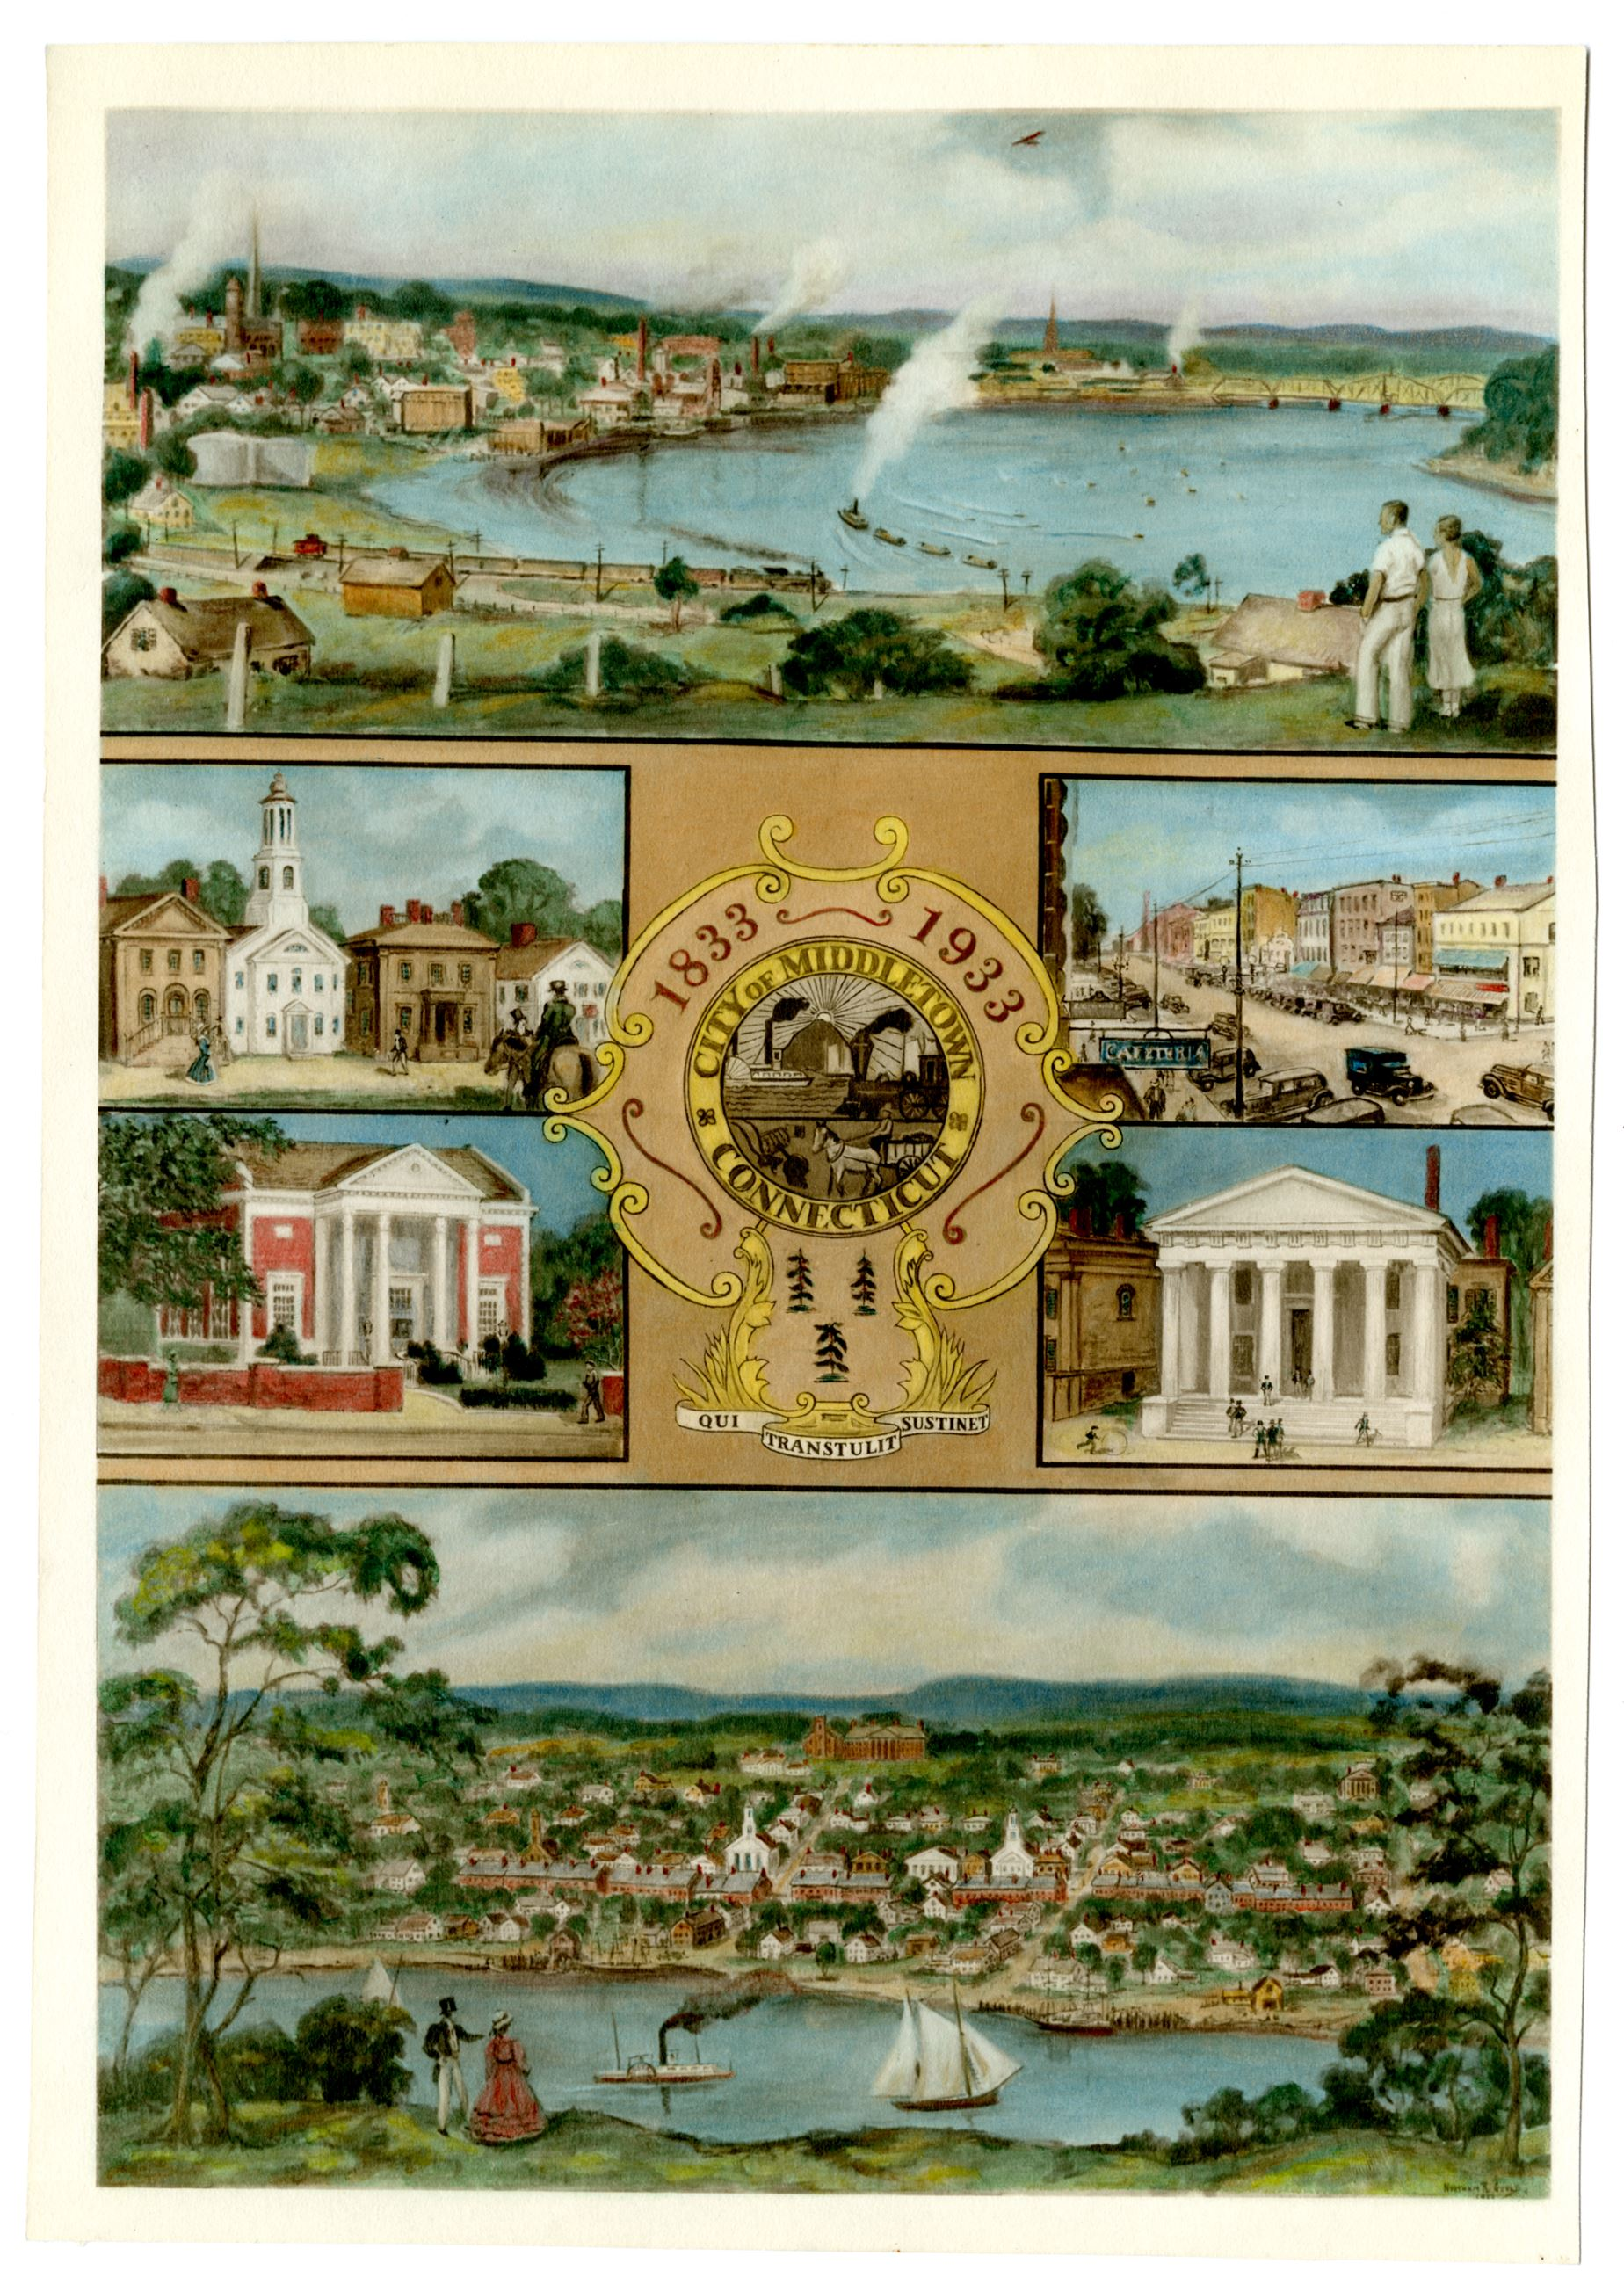 Historical Image of Middletown Anniversary Collage